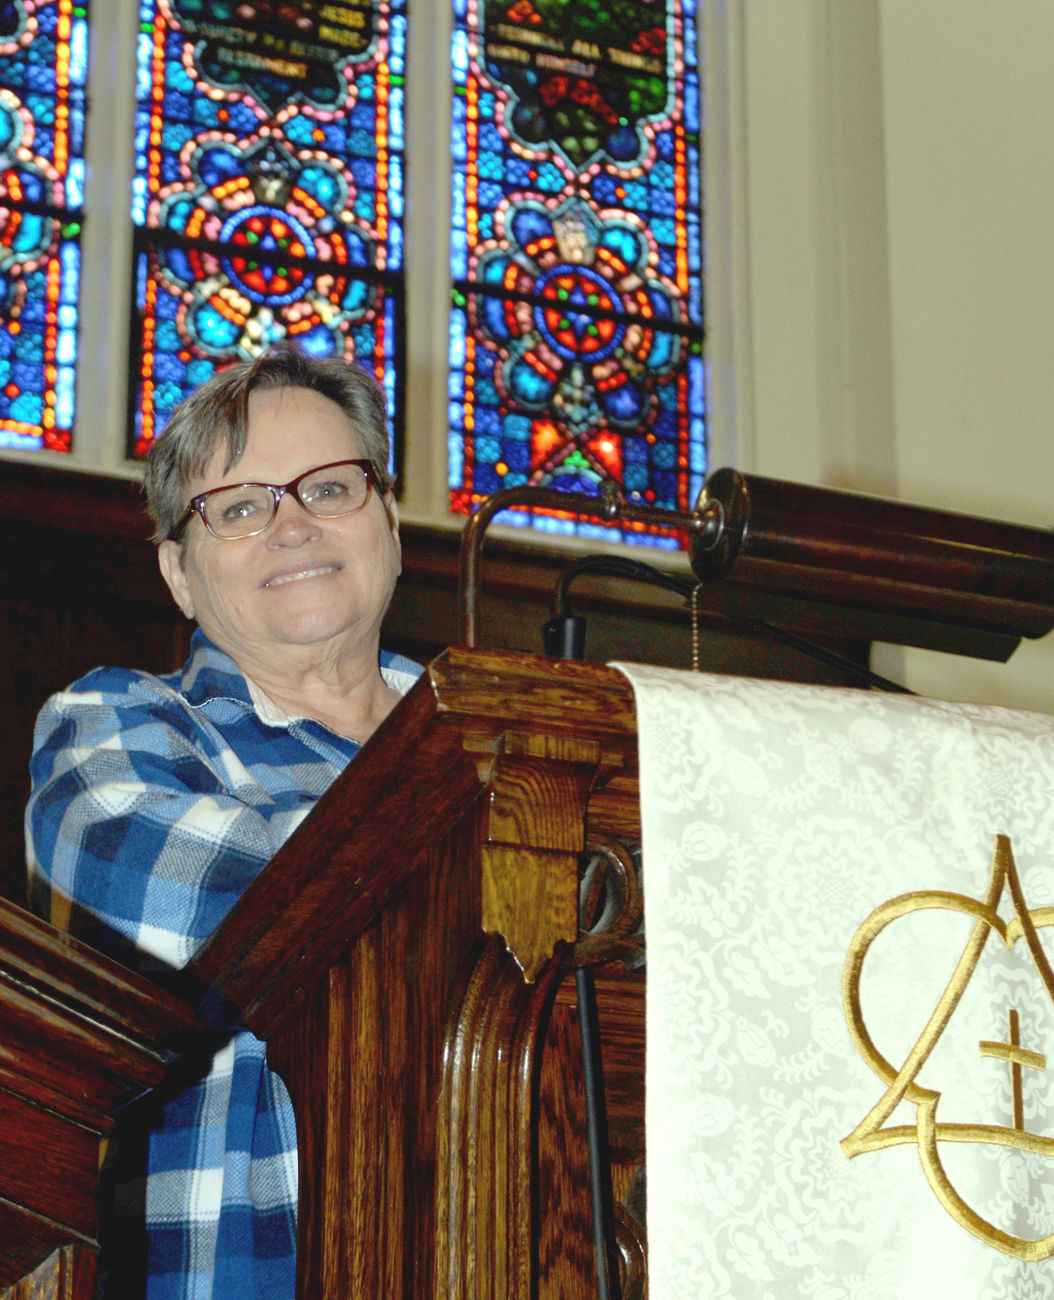 The Rev. Bev Roscoe